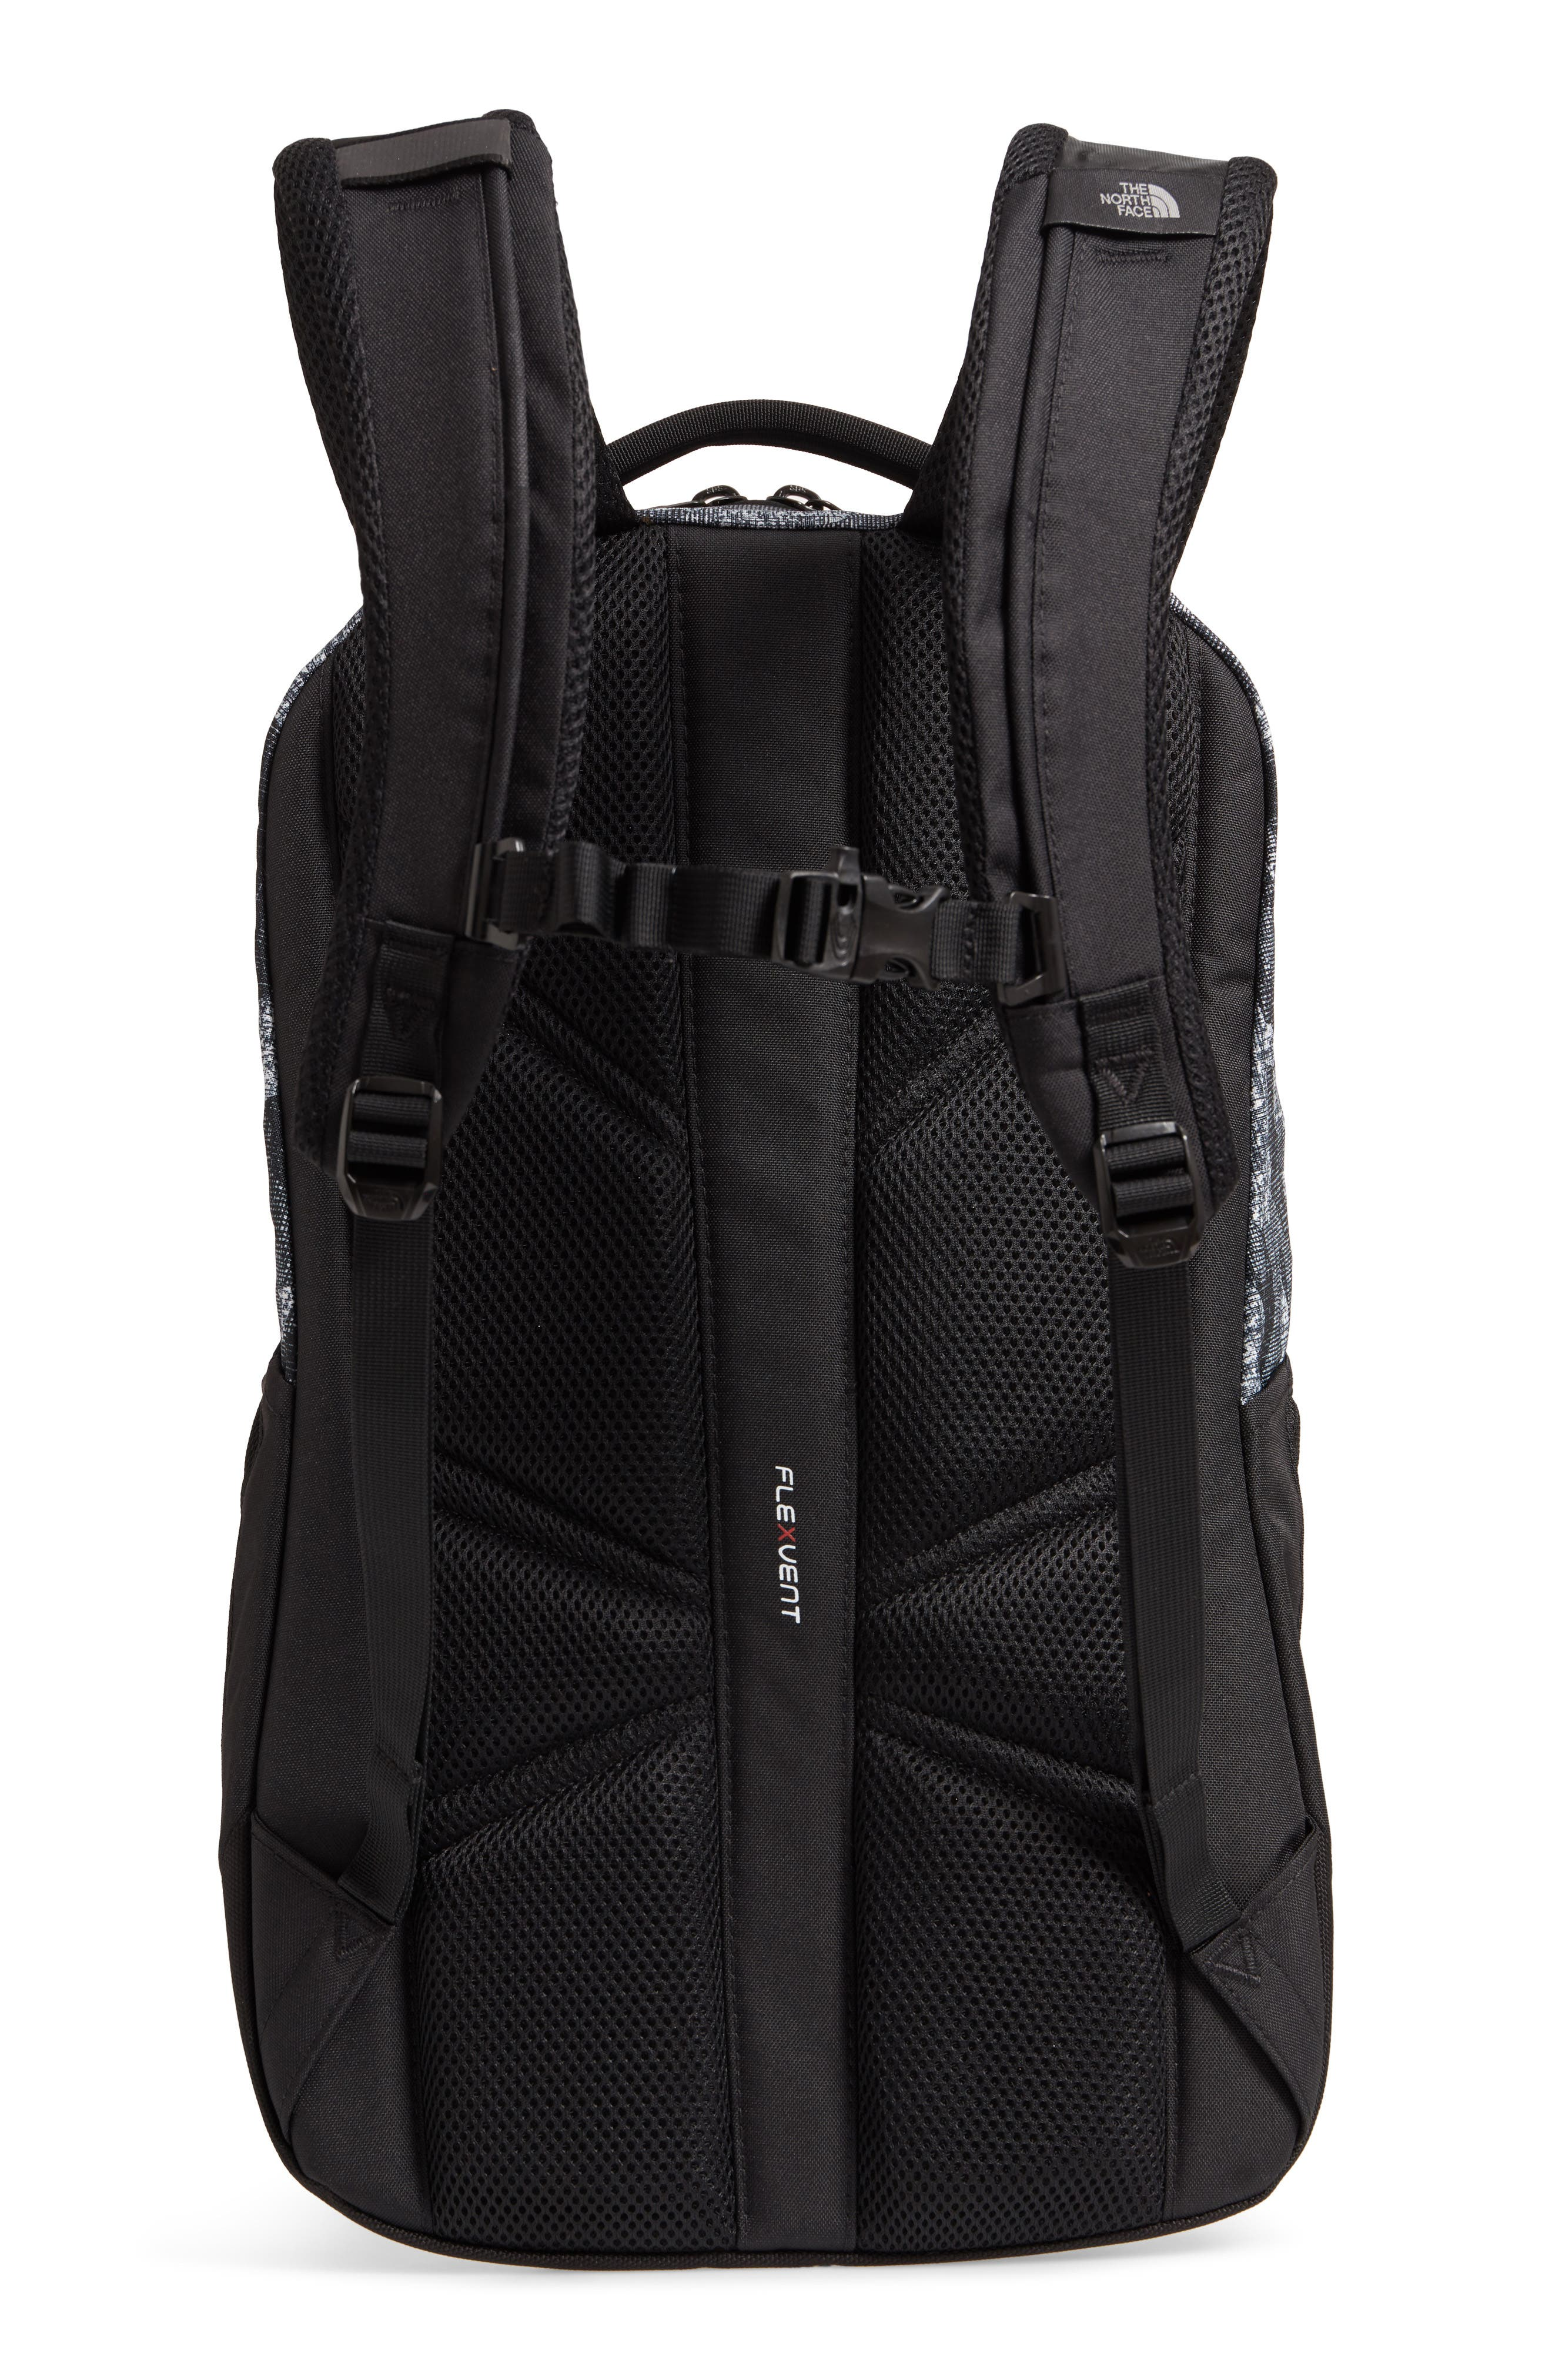 Vault Backpack,                             Alternate thumbnail 3, color,                             Tnf Black Textured Camo Print